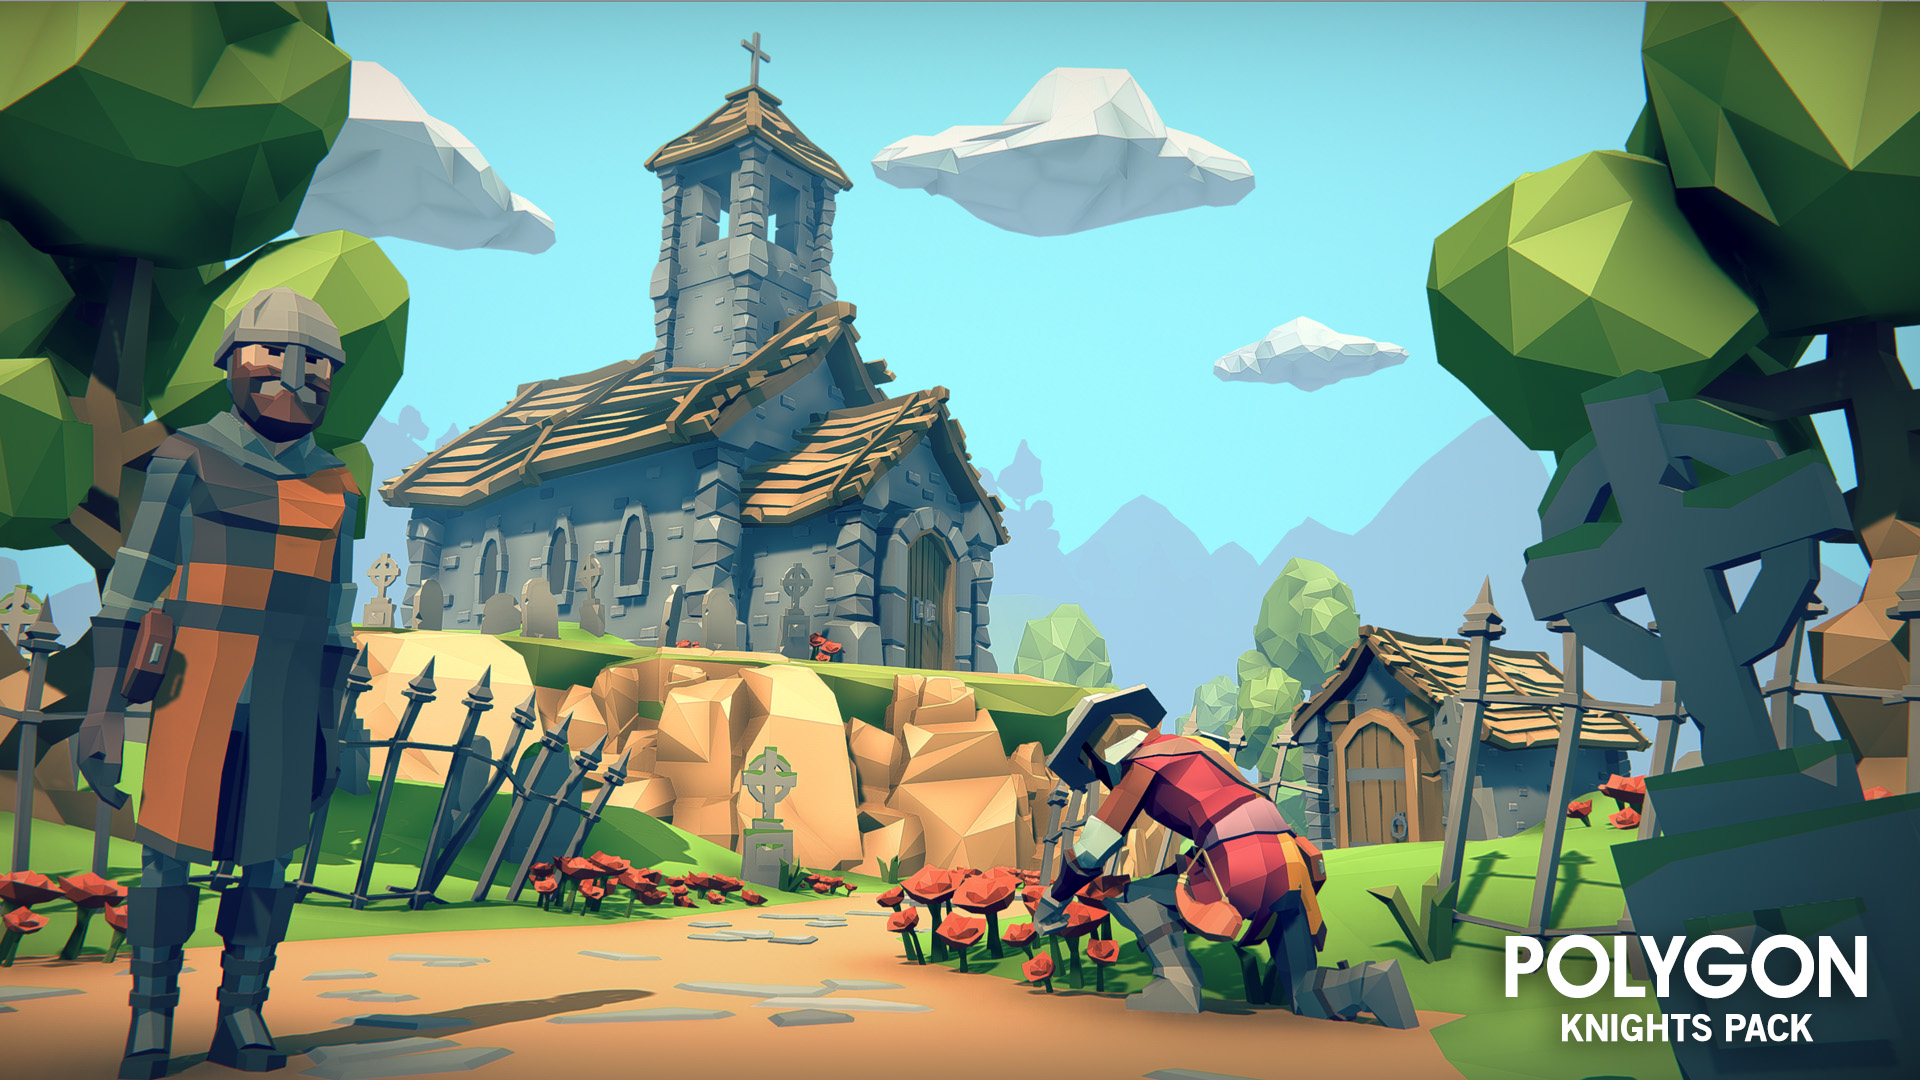 Unreal Engine 4 - POLYGON Knights Pack